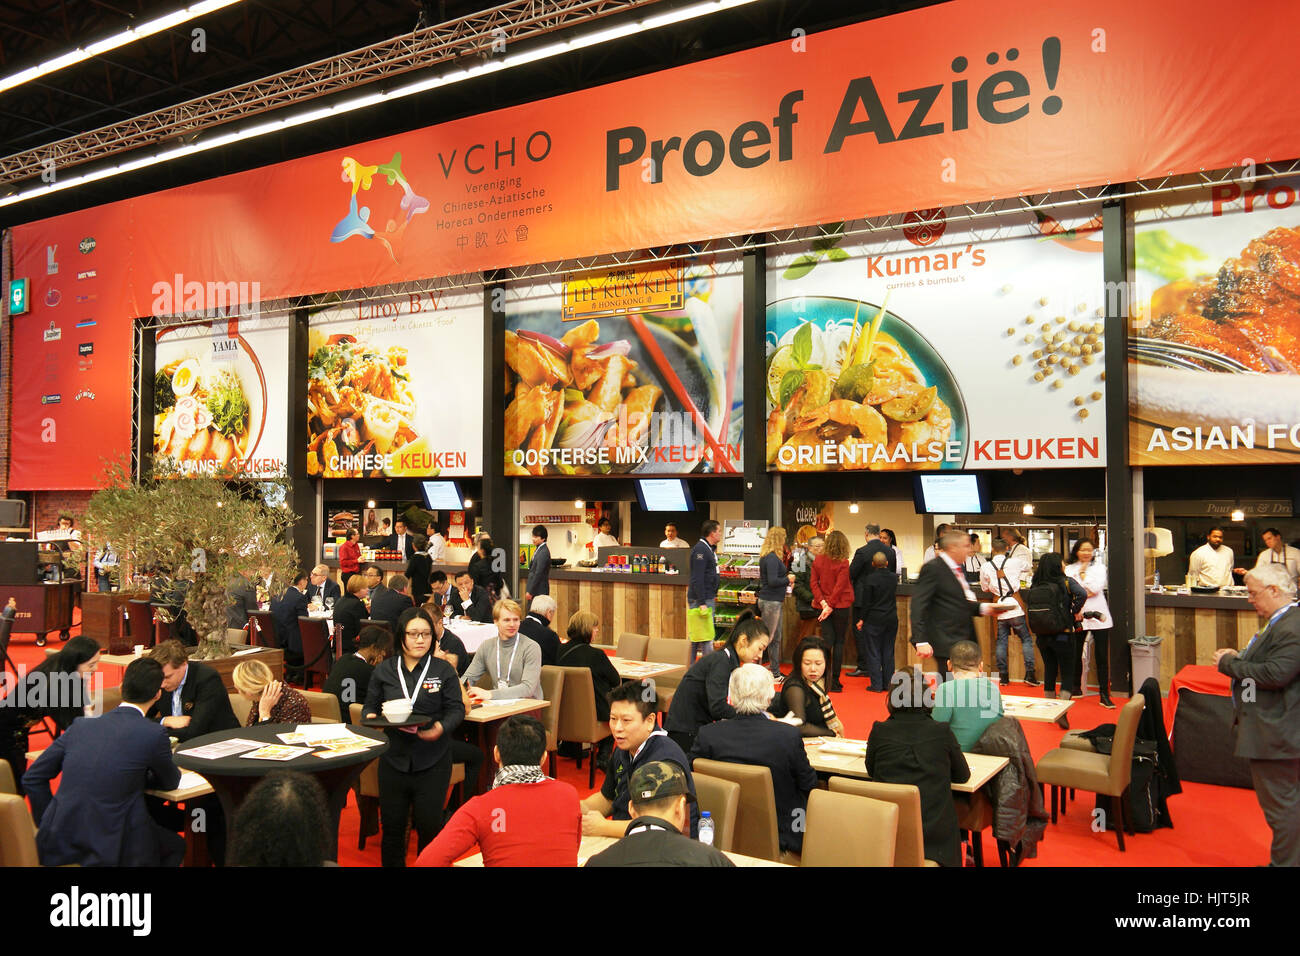 The Asia food department on the Amsterdam Annual Horecava hospitality trade fair. - Stock Image